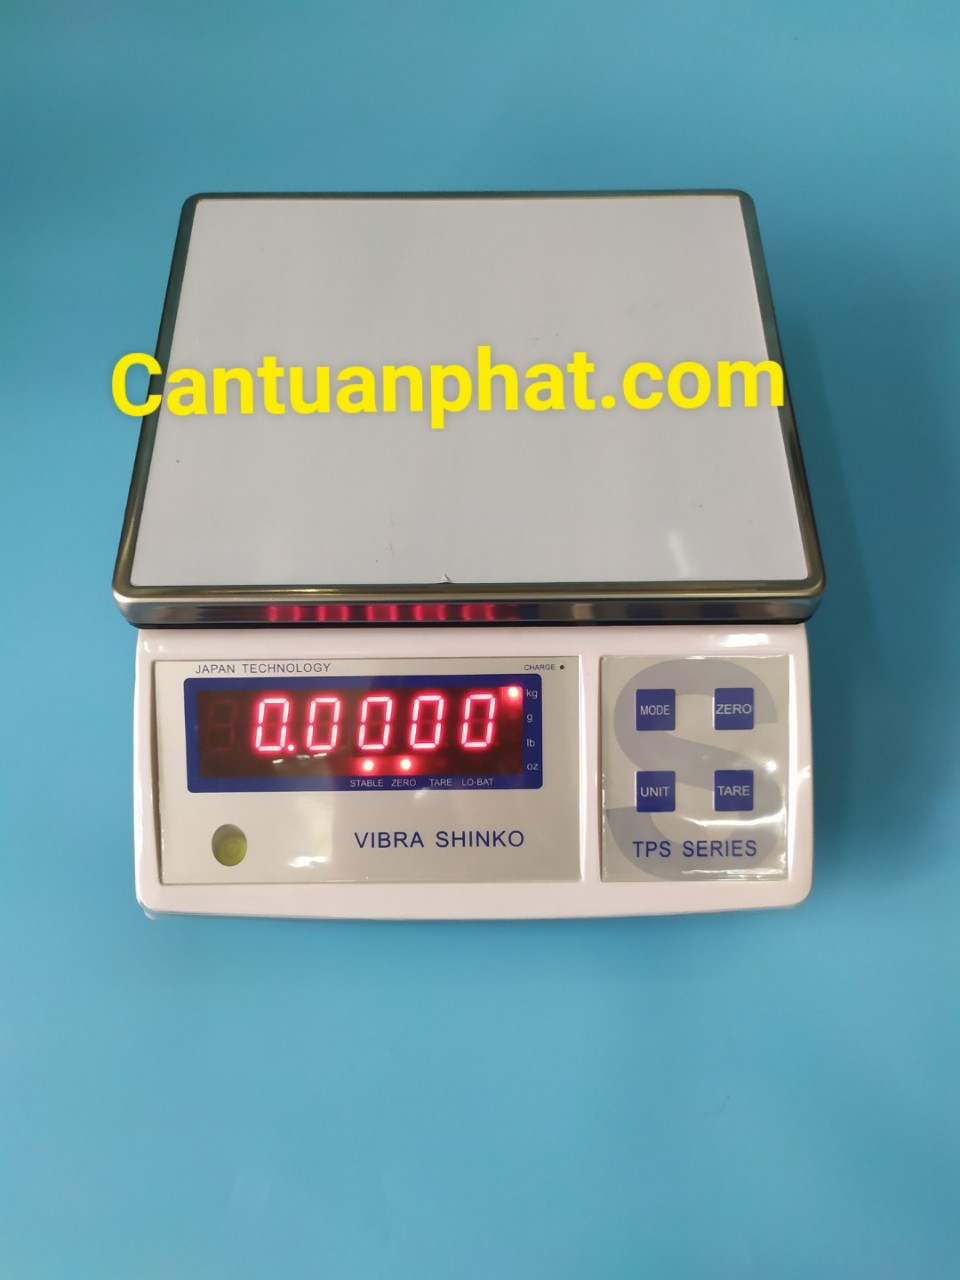 http://cantuanphat.com/pic/Product/1891_637008505659898469.jpg